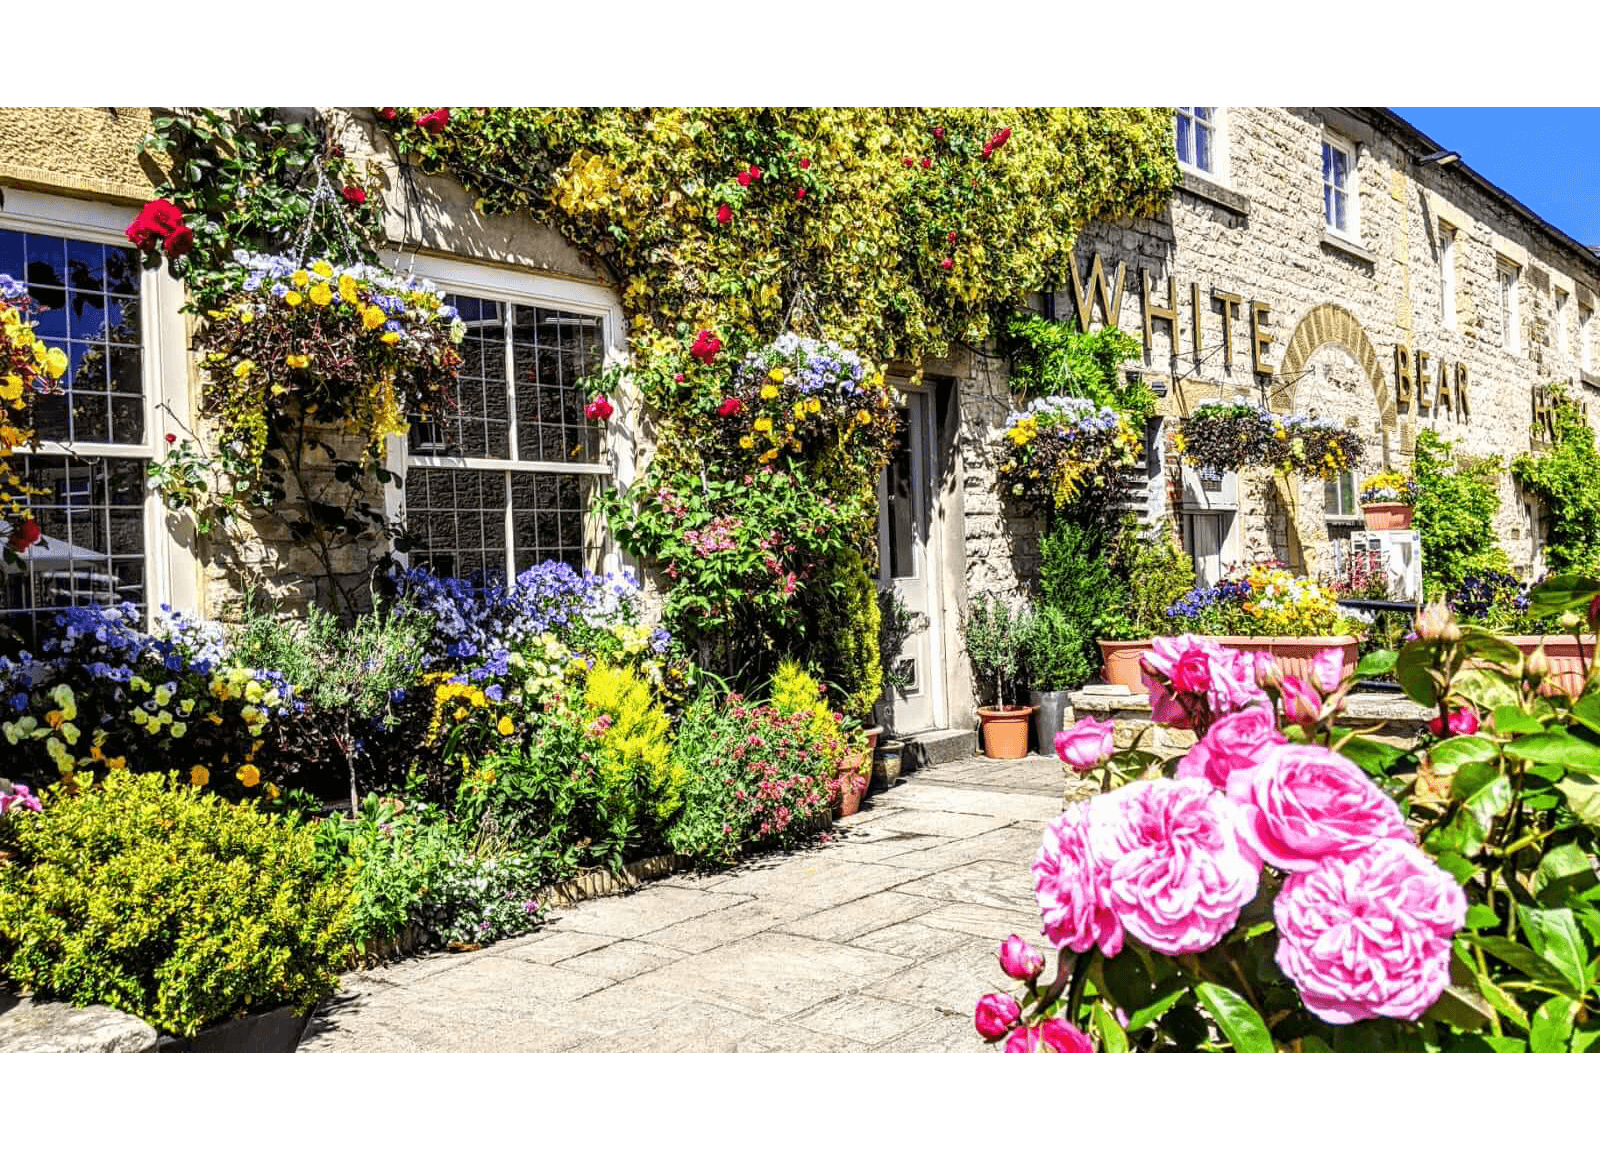 Pub in North Yorkshire